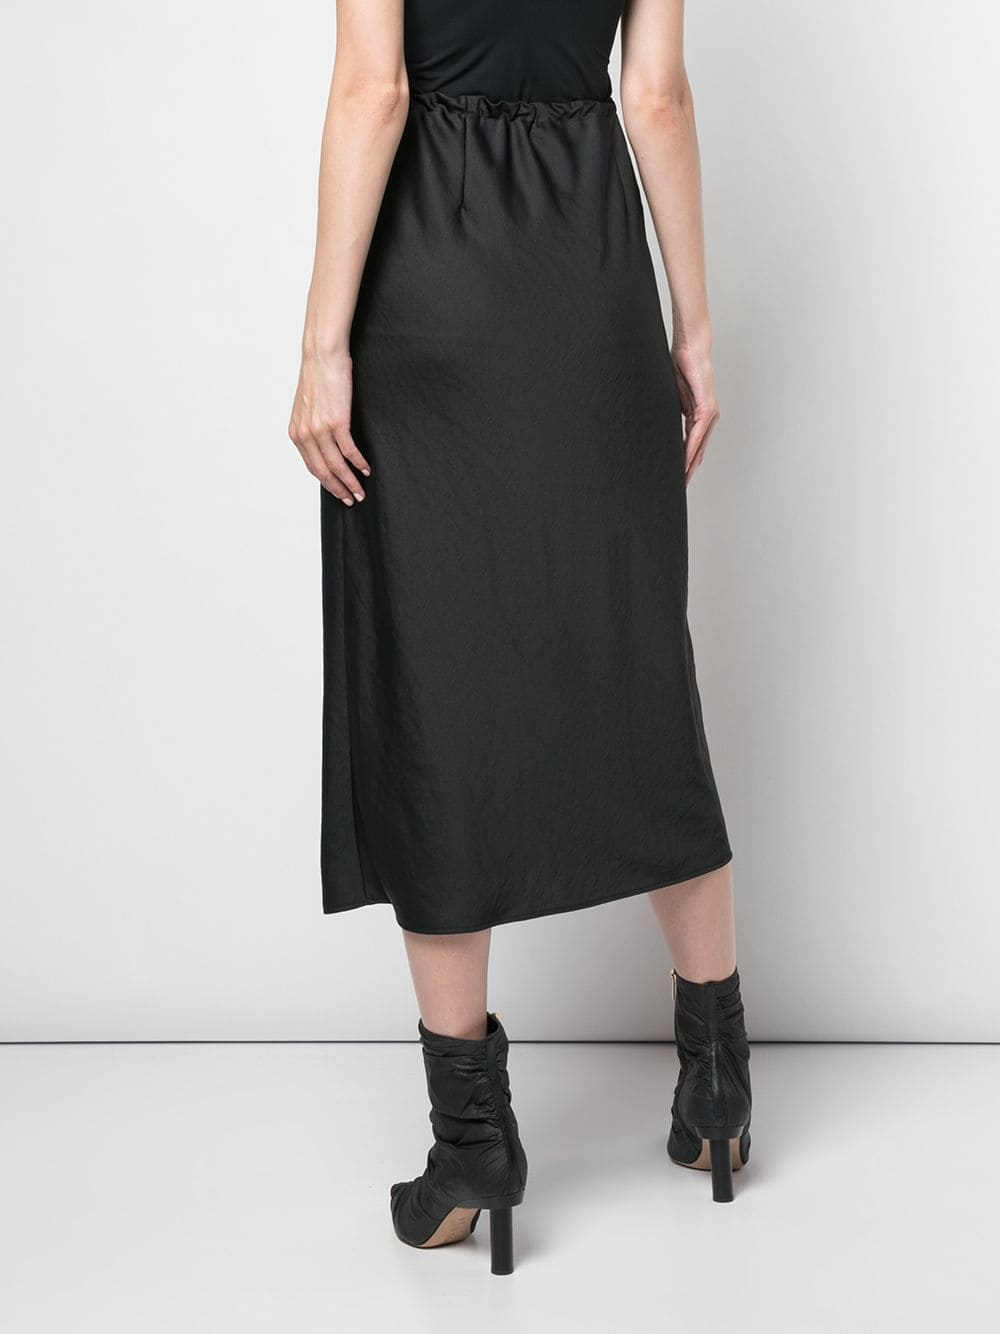 ALEXANDER WANG WOMEN LIGHT WASH & GO SKIRT